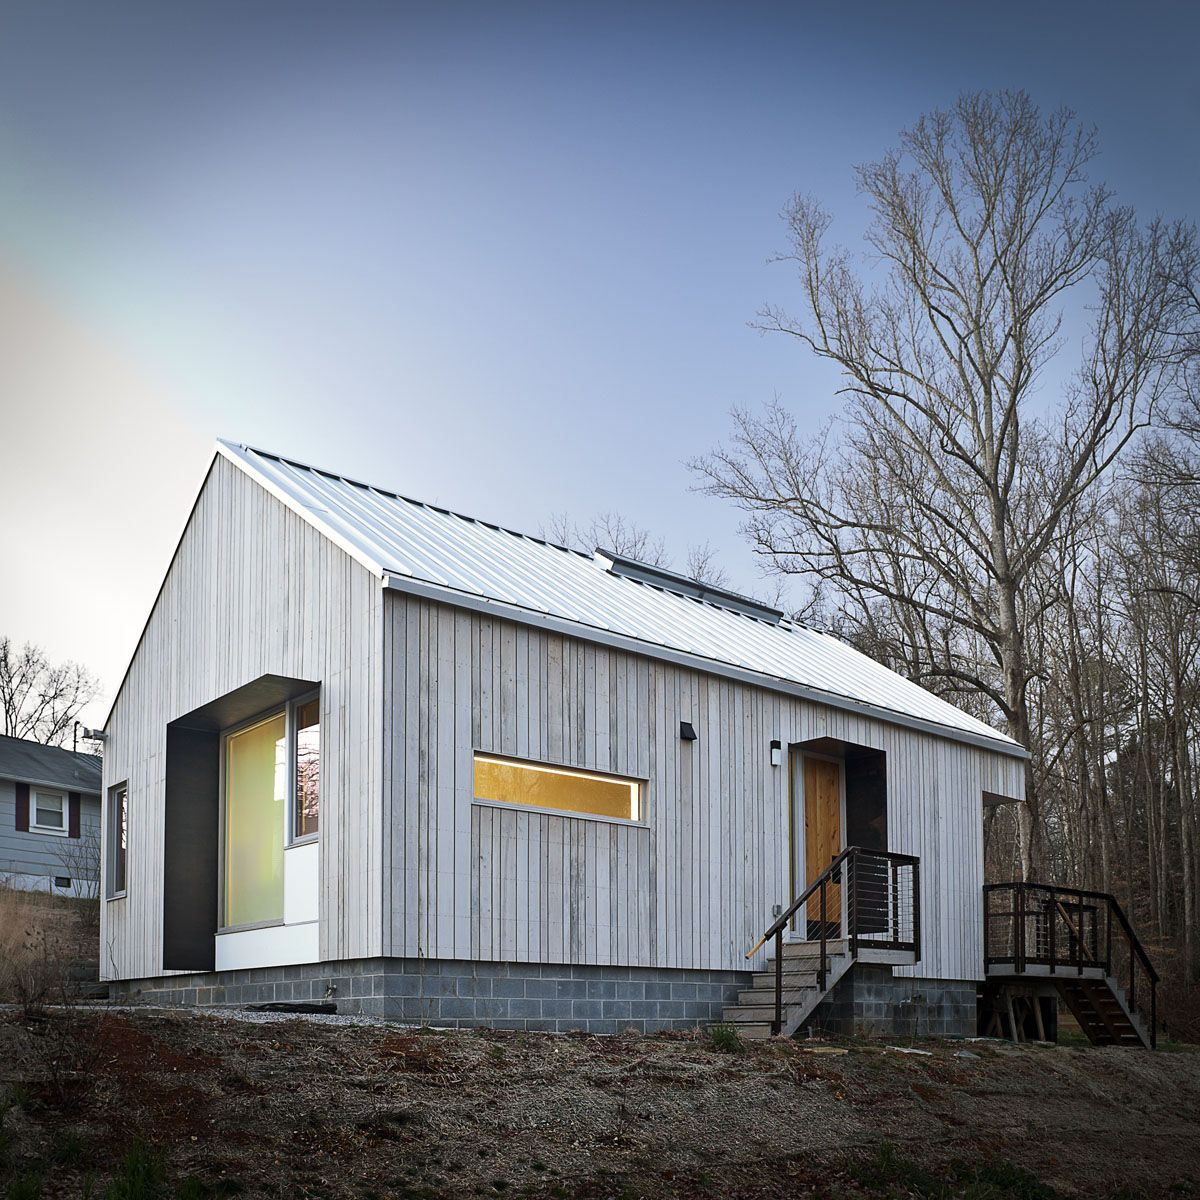 LEED compact house. Norris, TN.   UT Knoxville College of Architecture studio project.